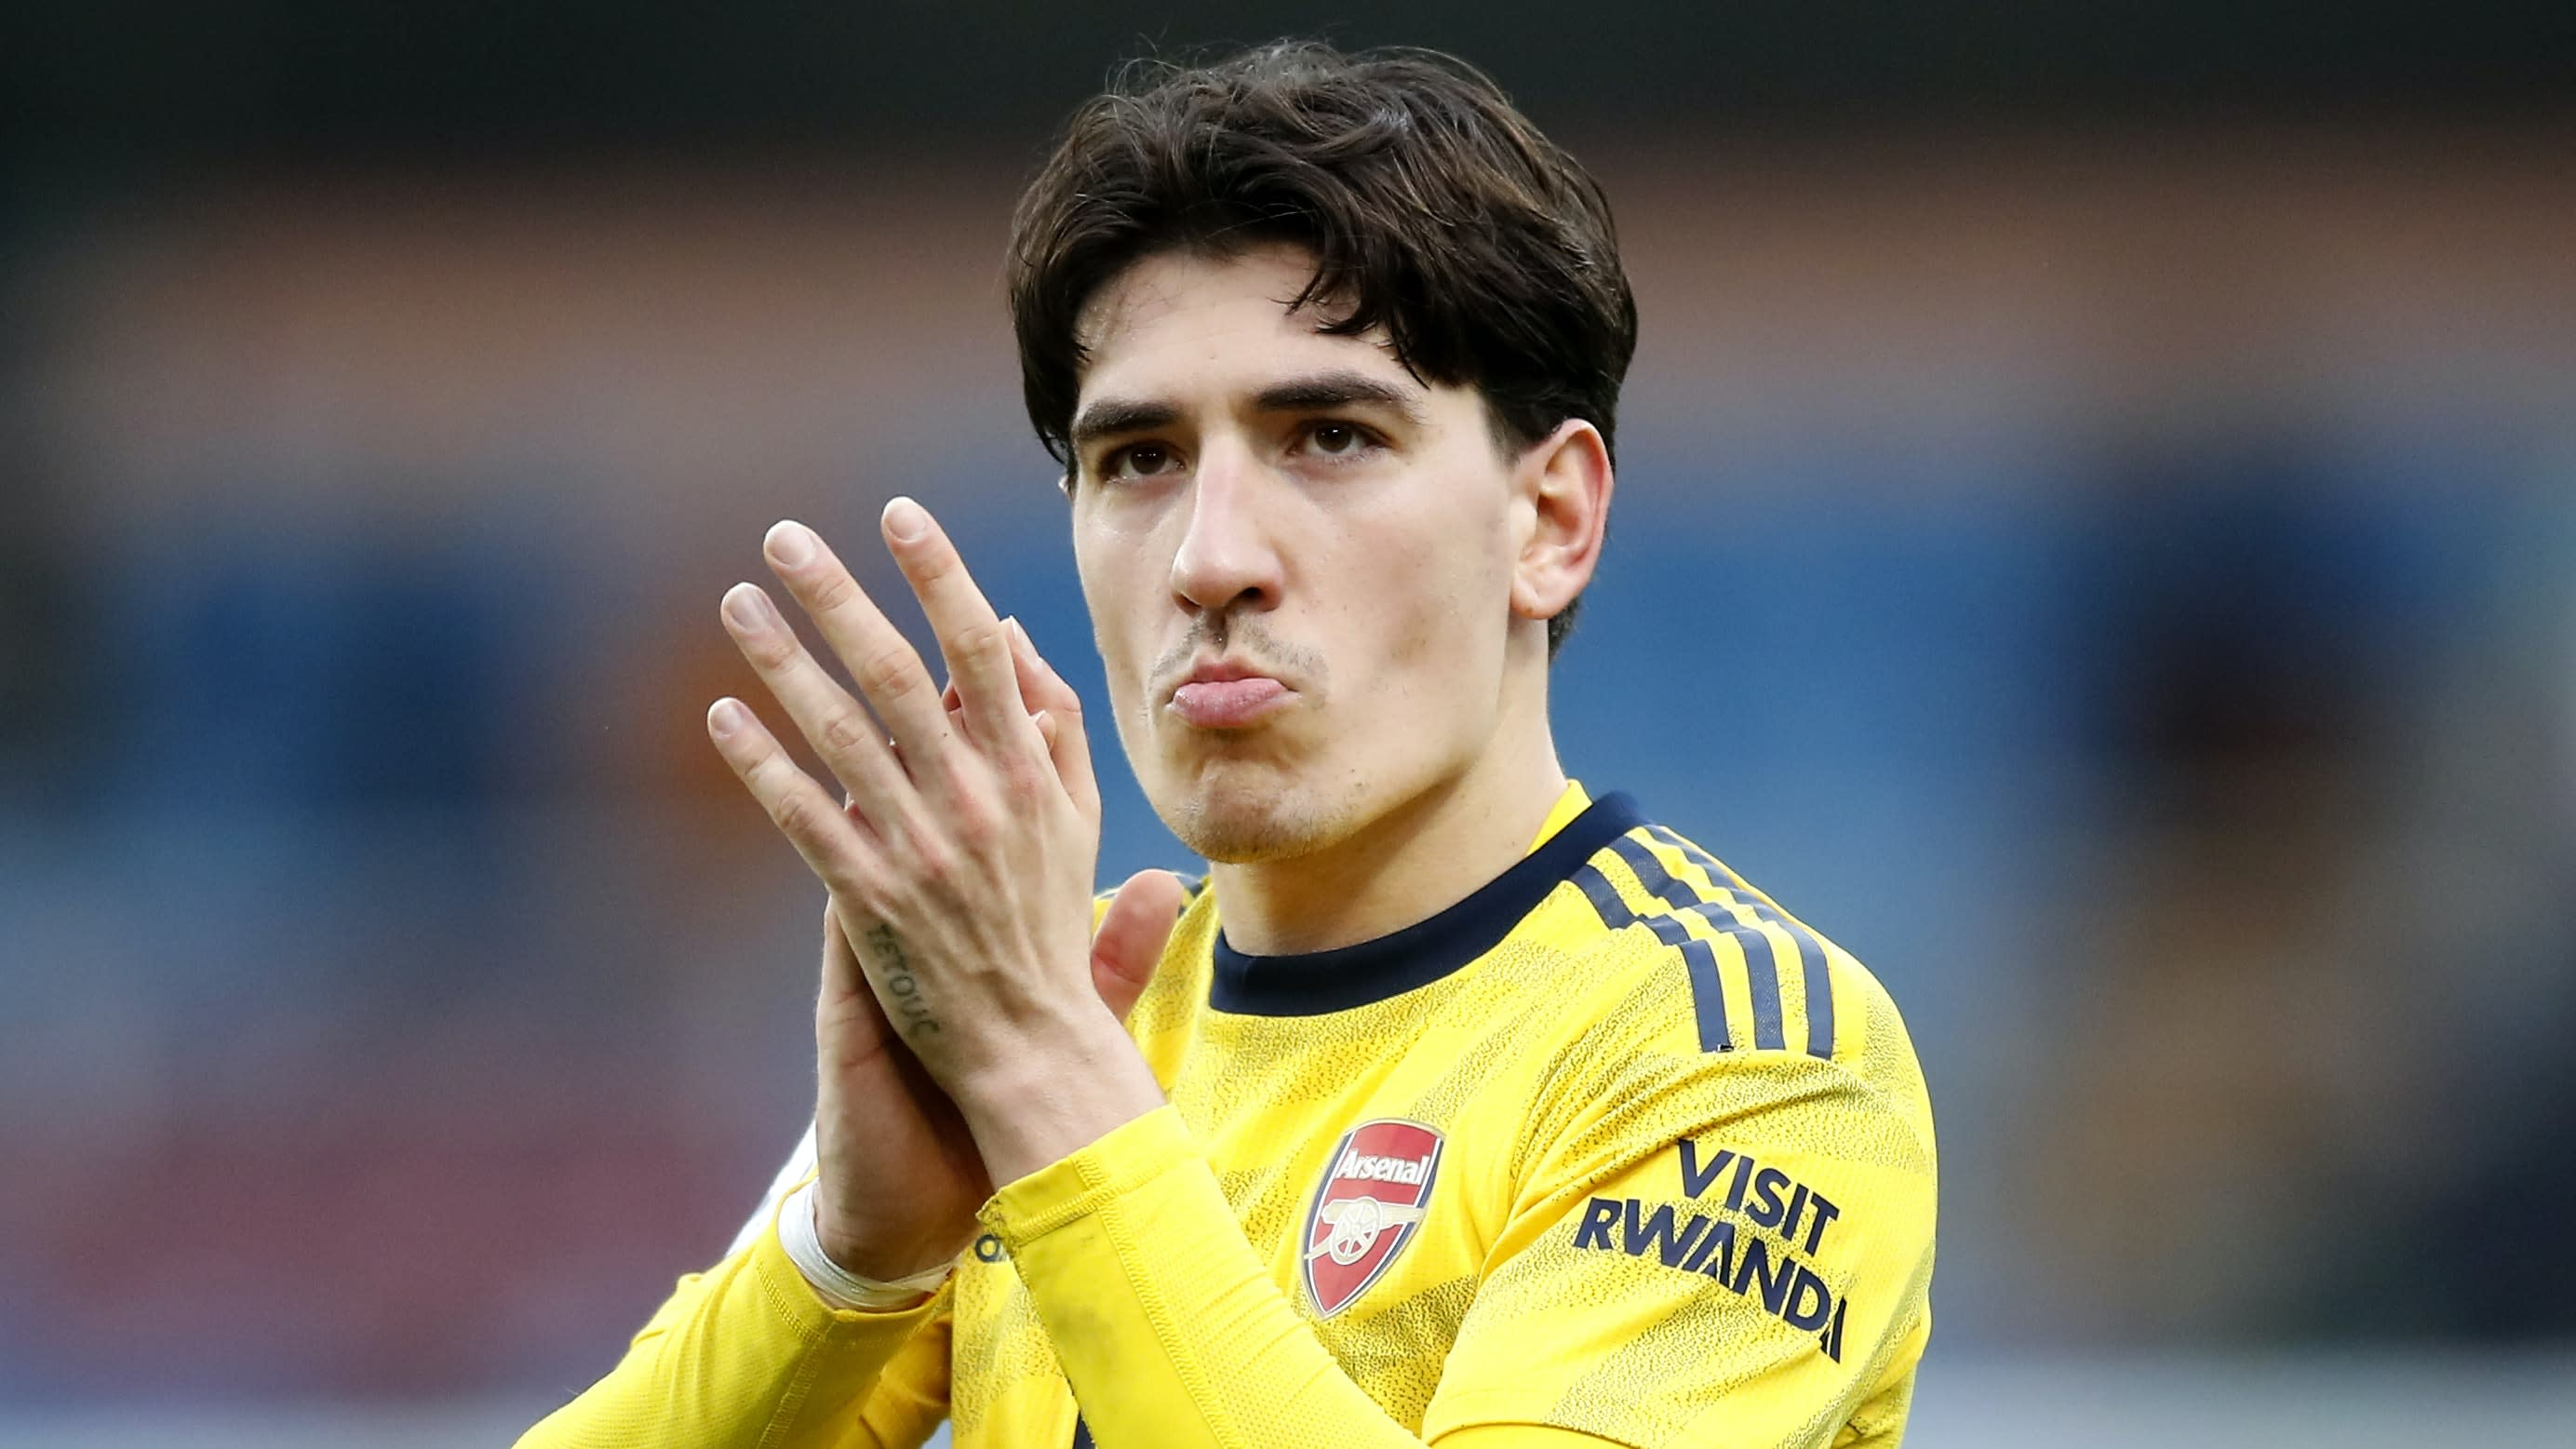 Hectare Bellerin! The defender is gunner get planting – Monday's sporting social